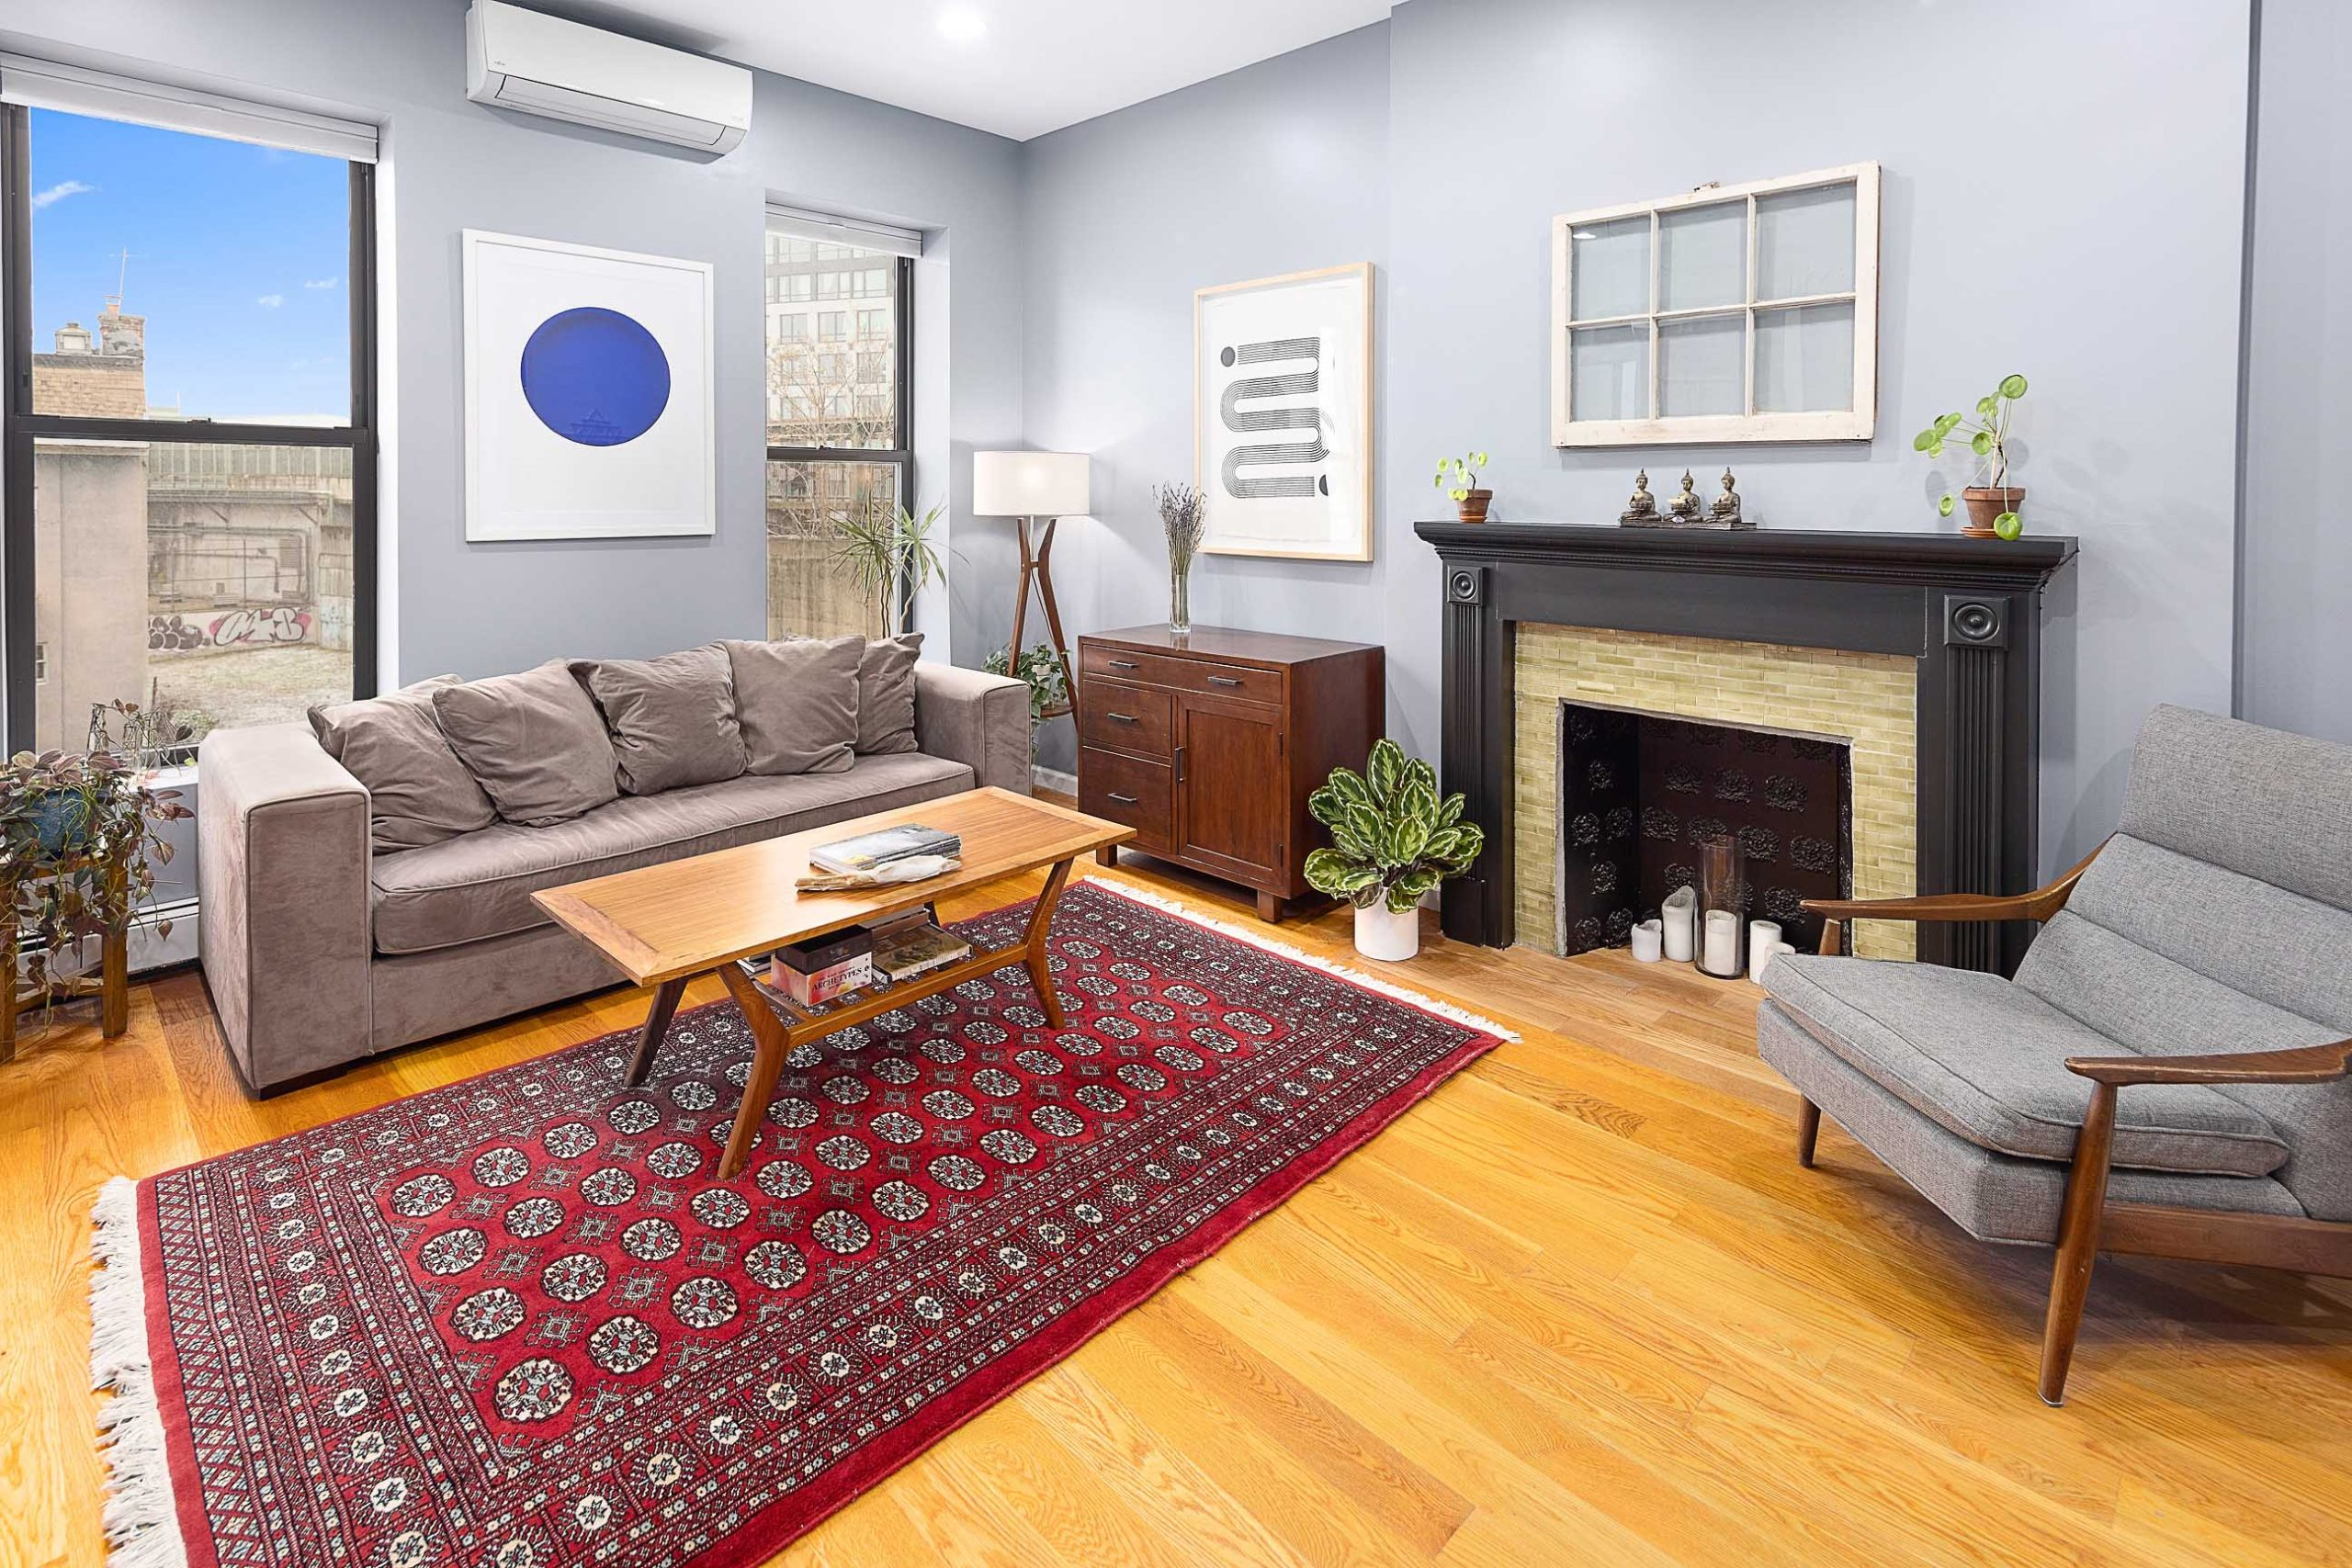 RENTED: 208 Lefferts Place - Bedford Stuyvesant